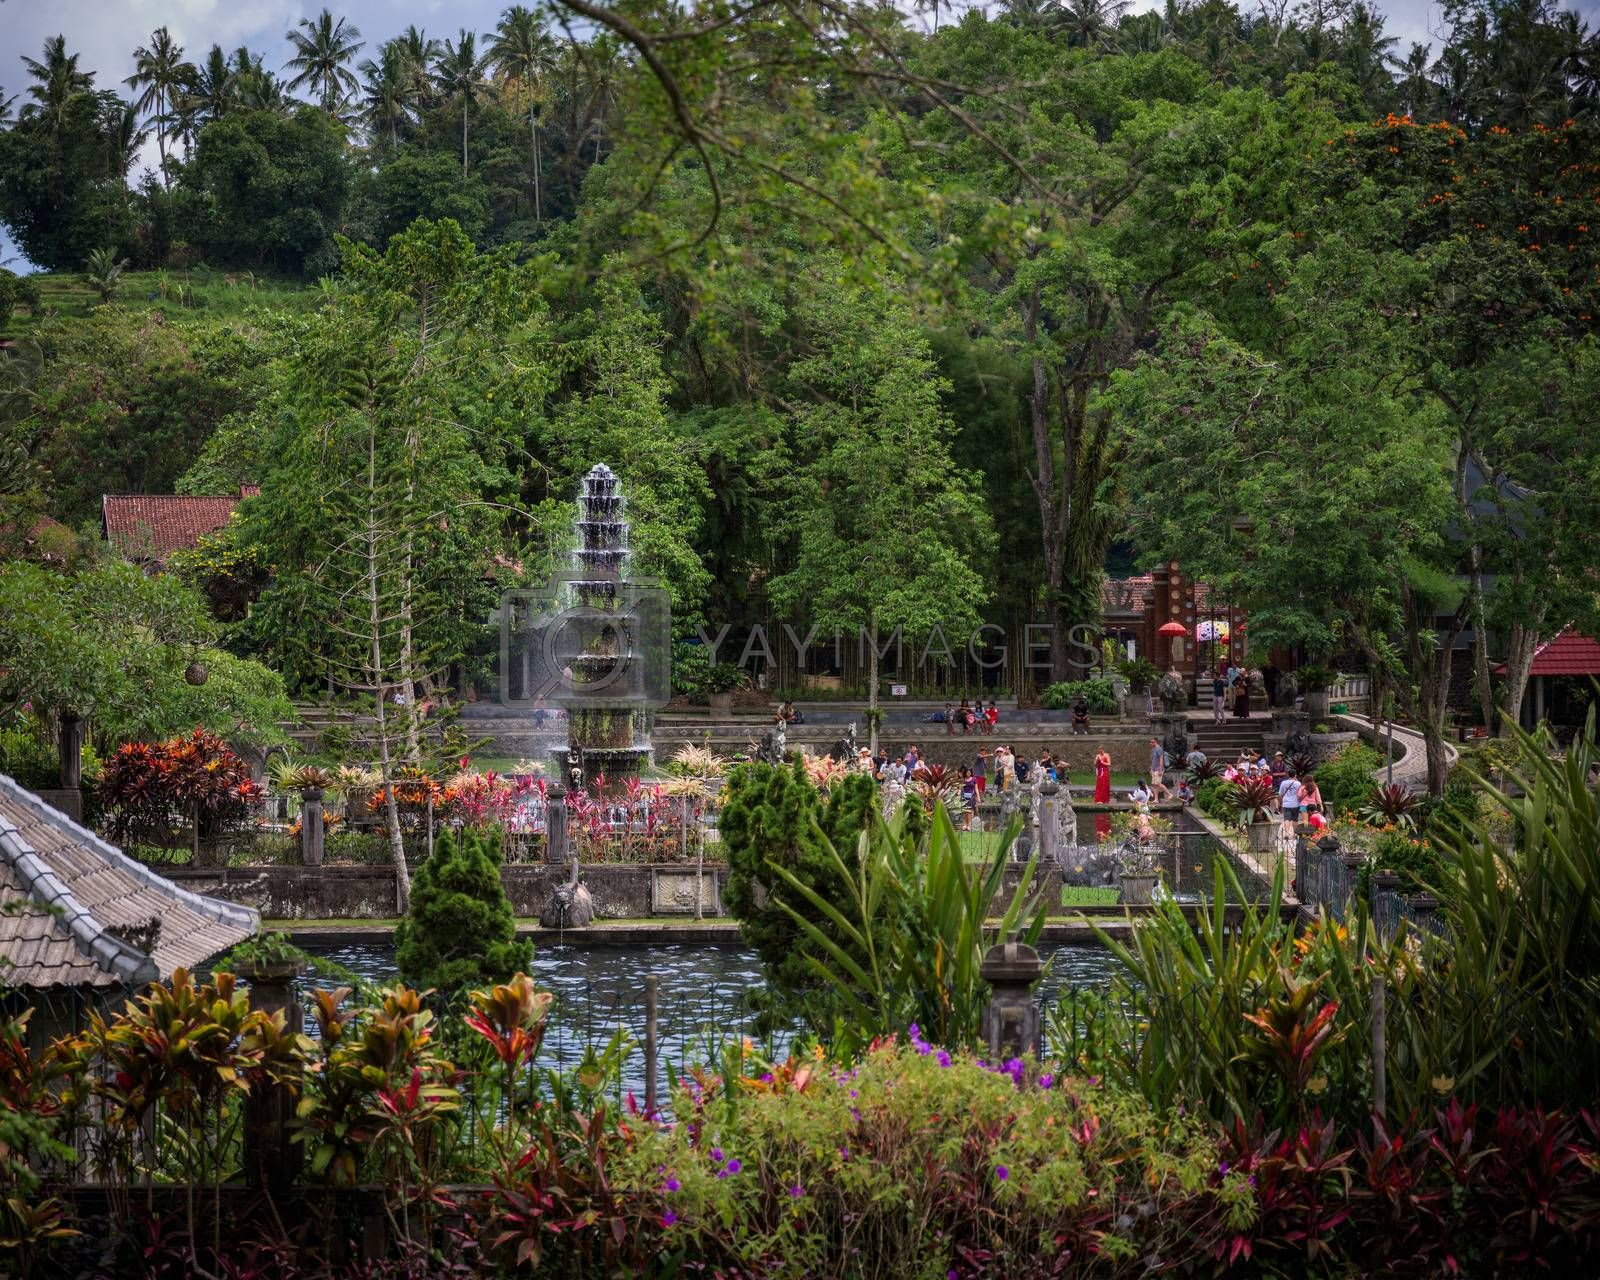 Bali, Indonesia - 25 Nov 2018: The central tiered fountain and the Tirtagangga royal palace gardens are a popular tourist post, Bali, Indonesia.